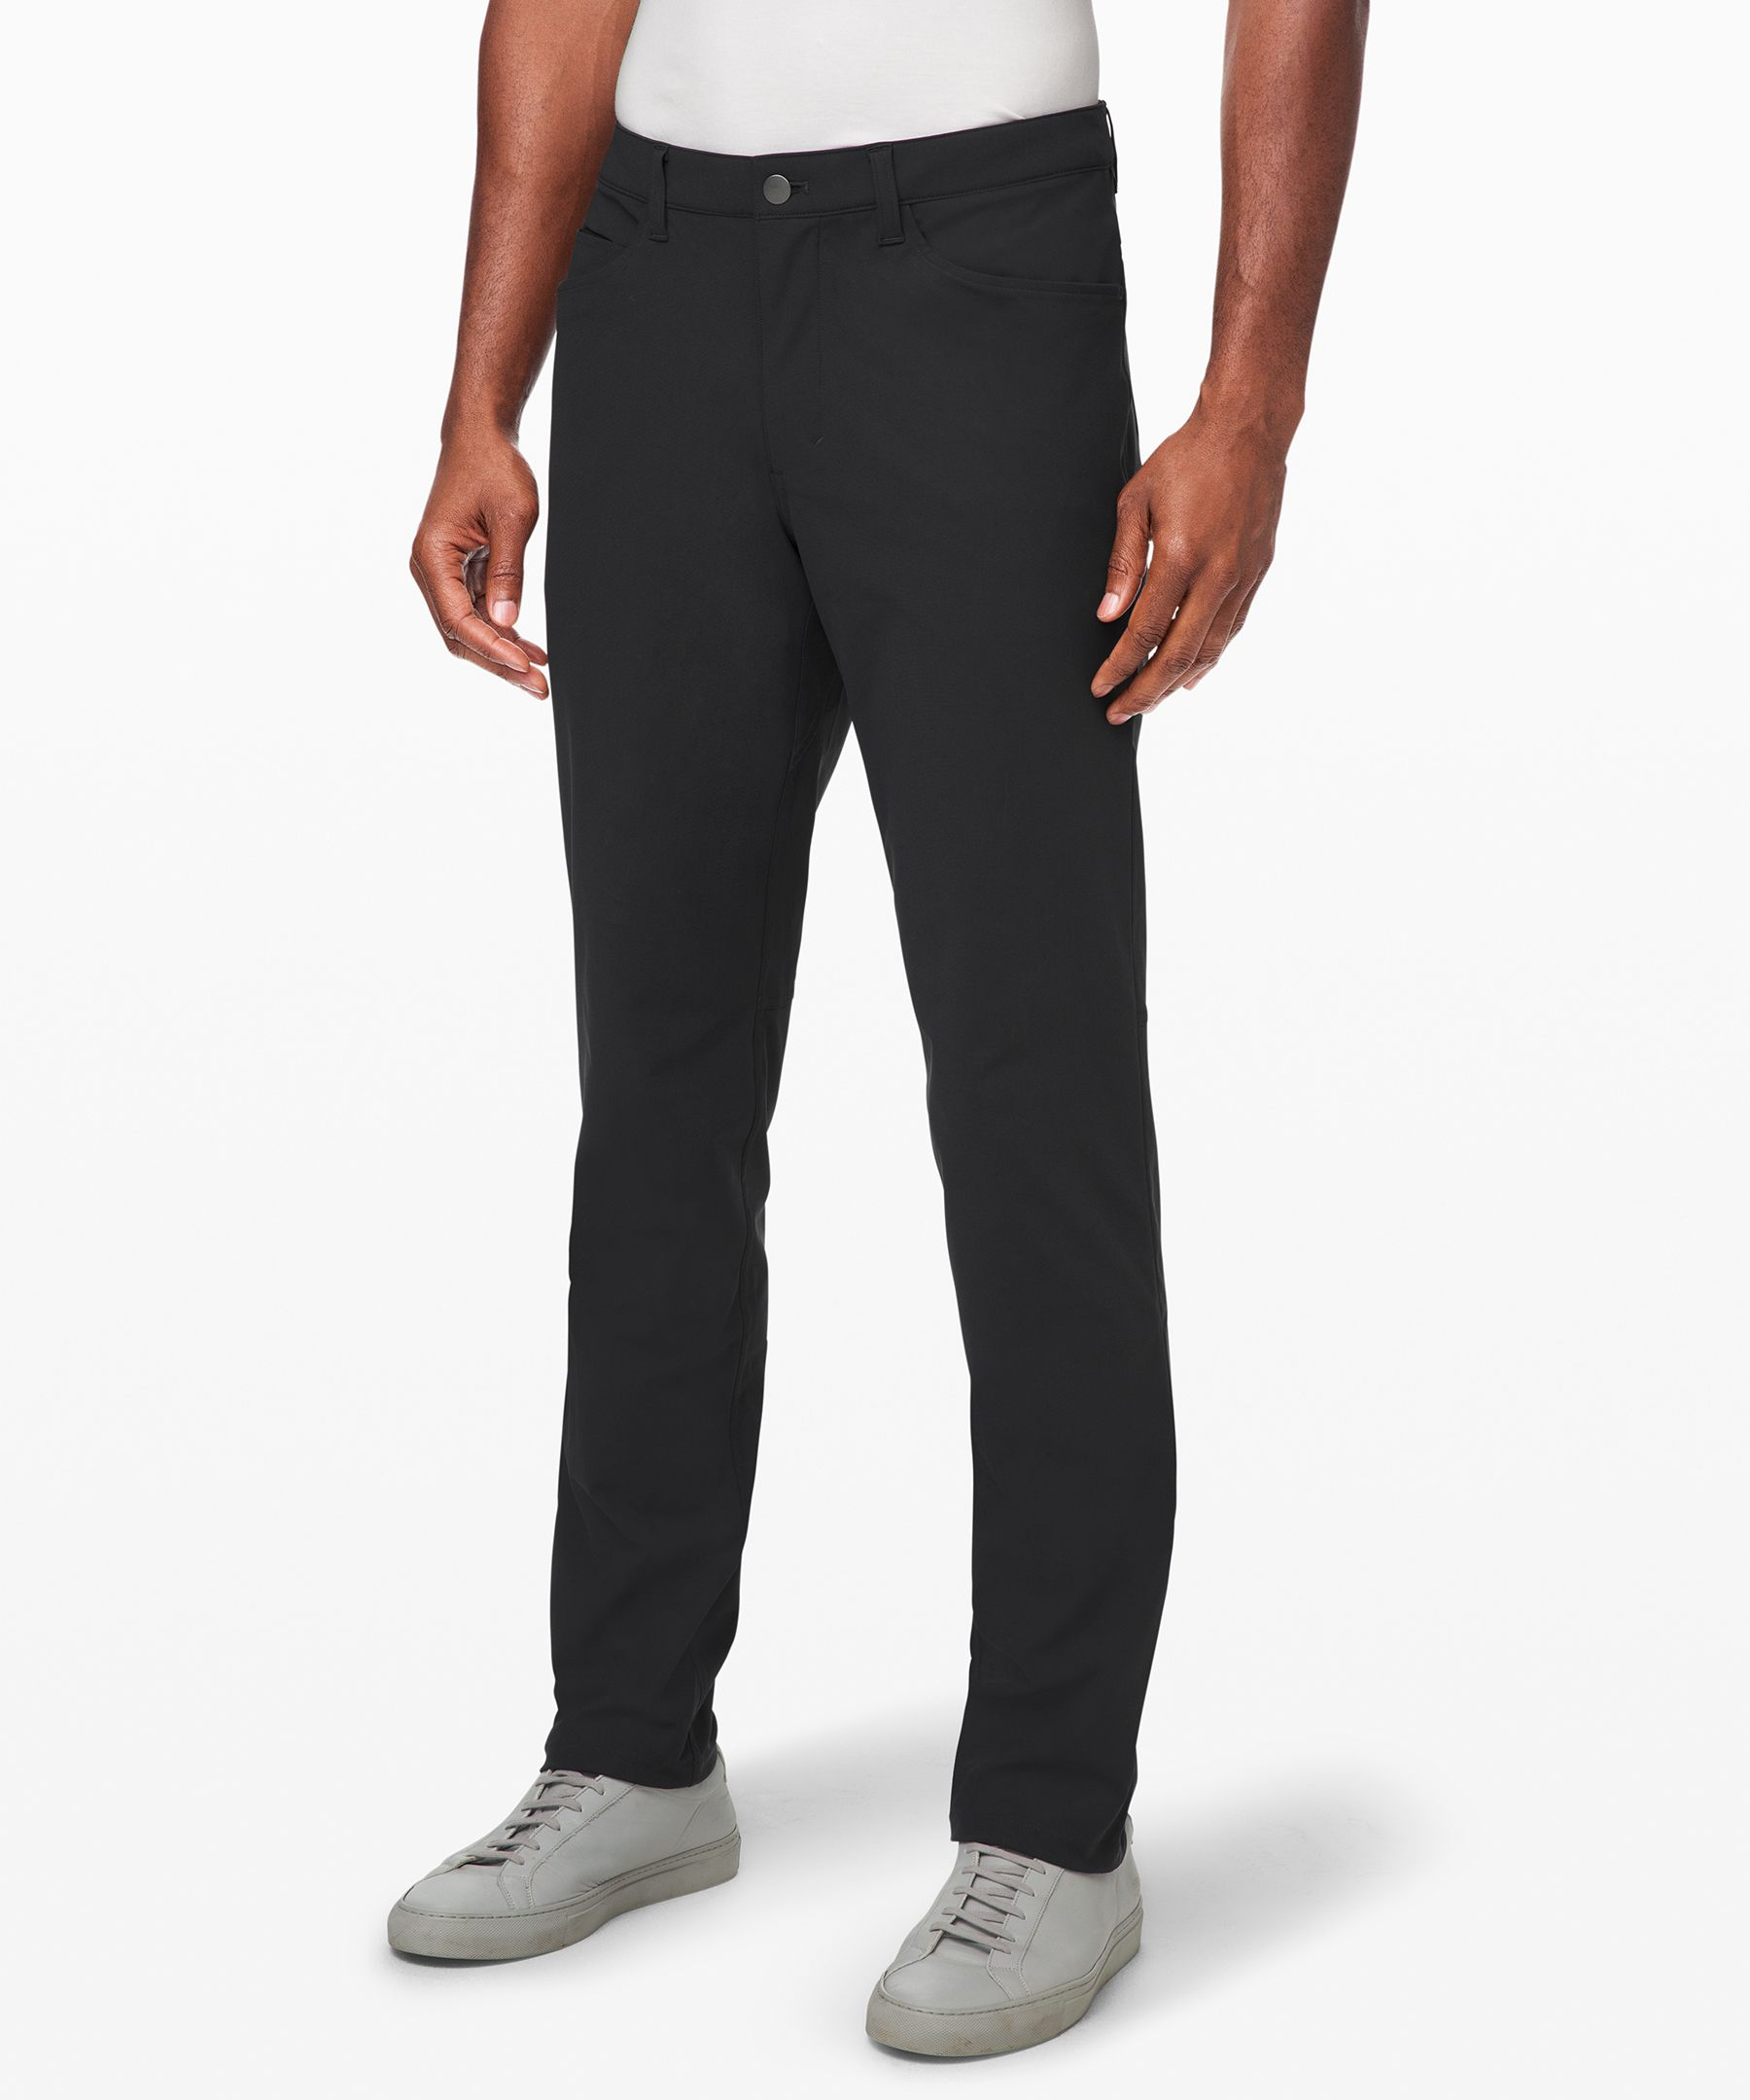 Move freely in all-day comfort with these classic-fit pants inspired by the timeless details of 5-pocket jeans.